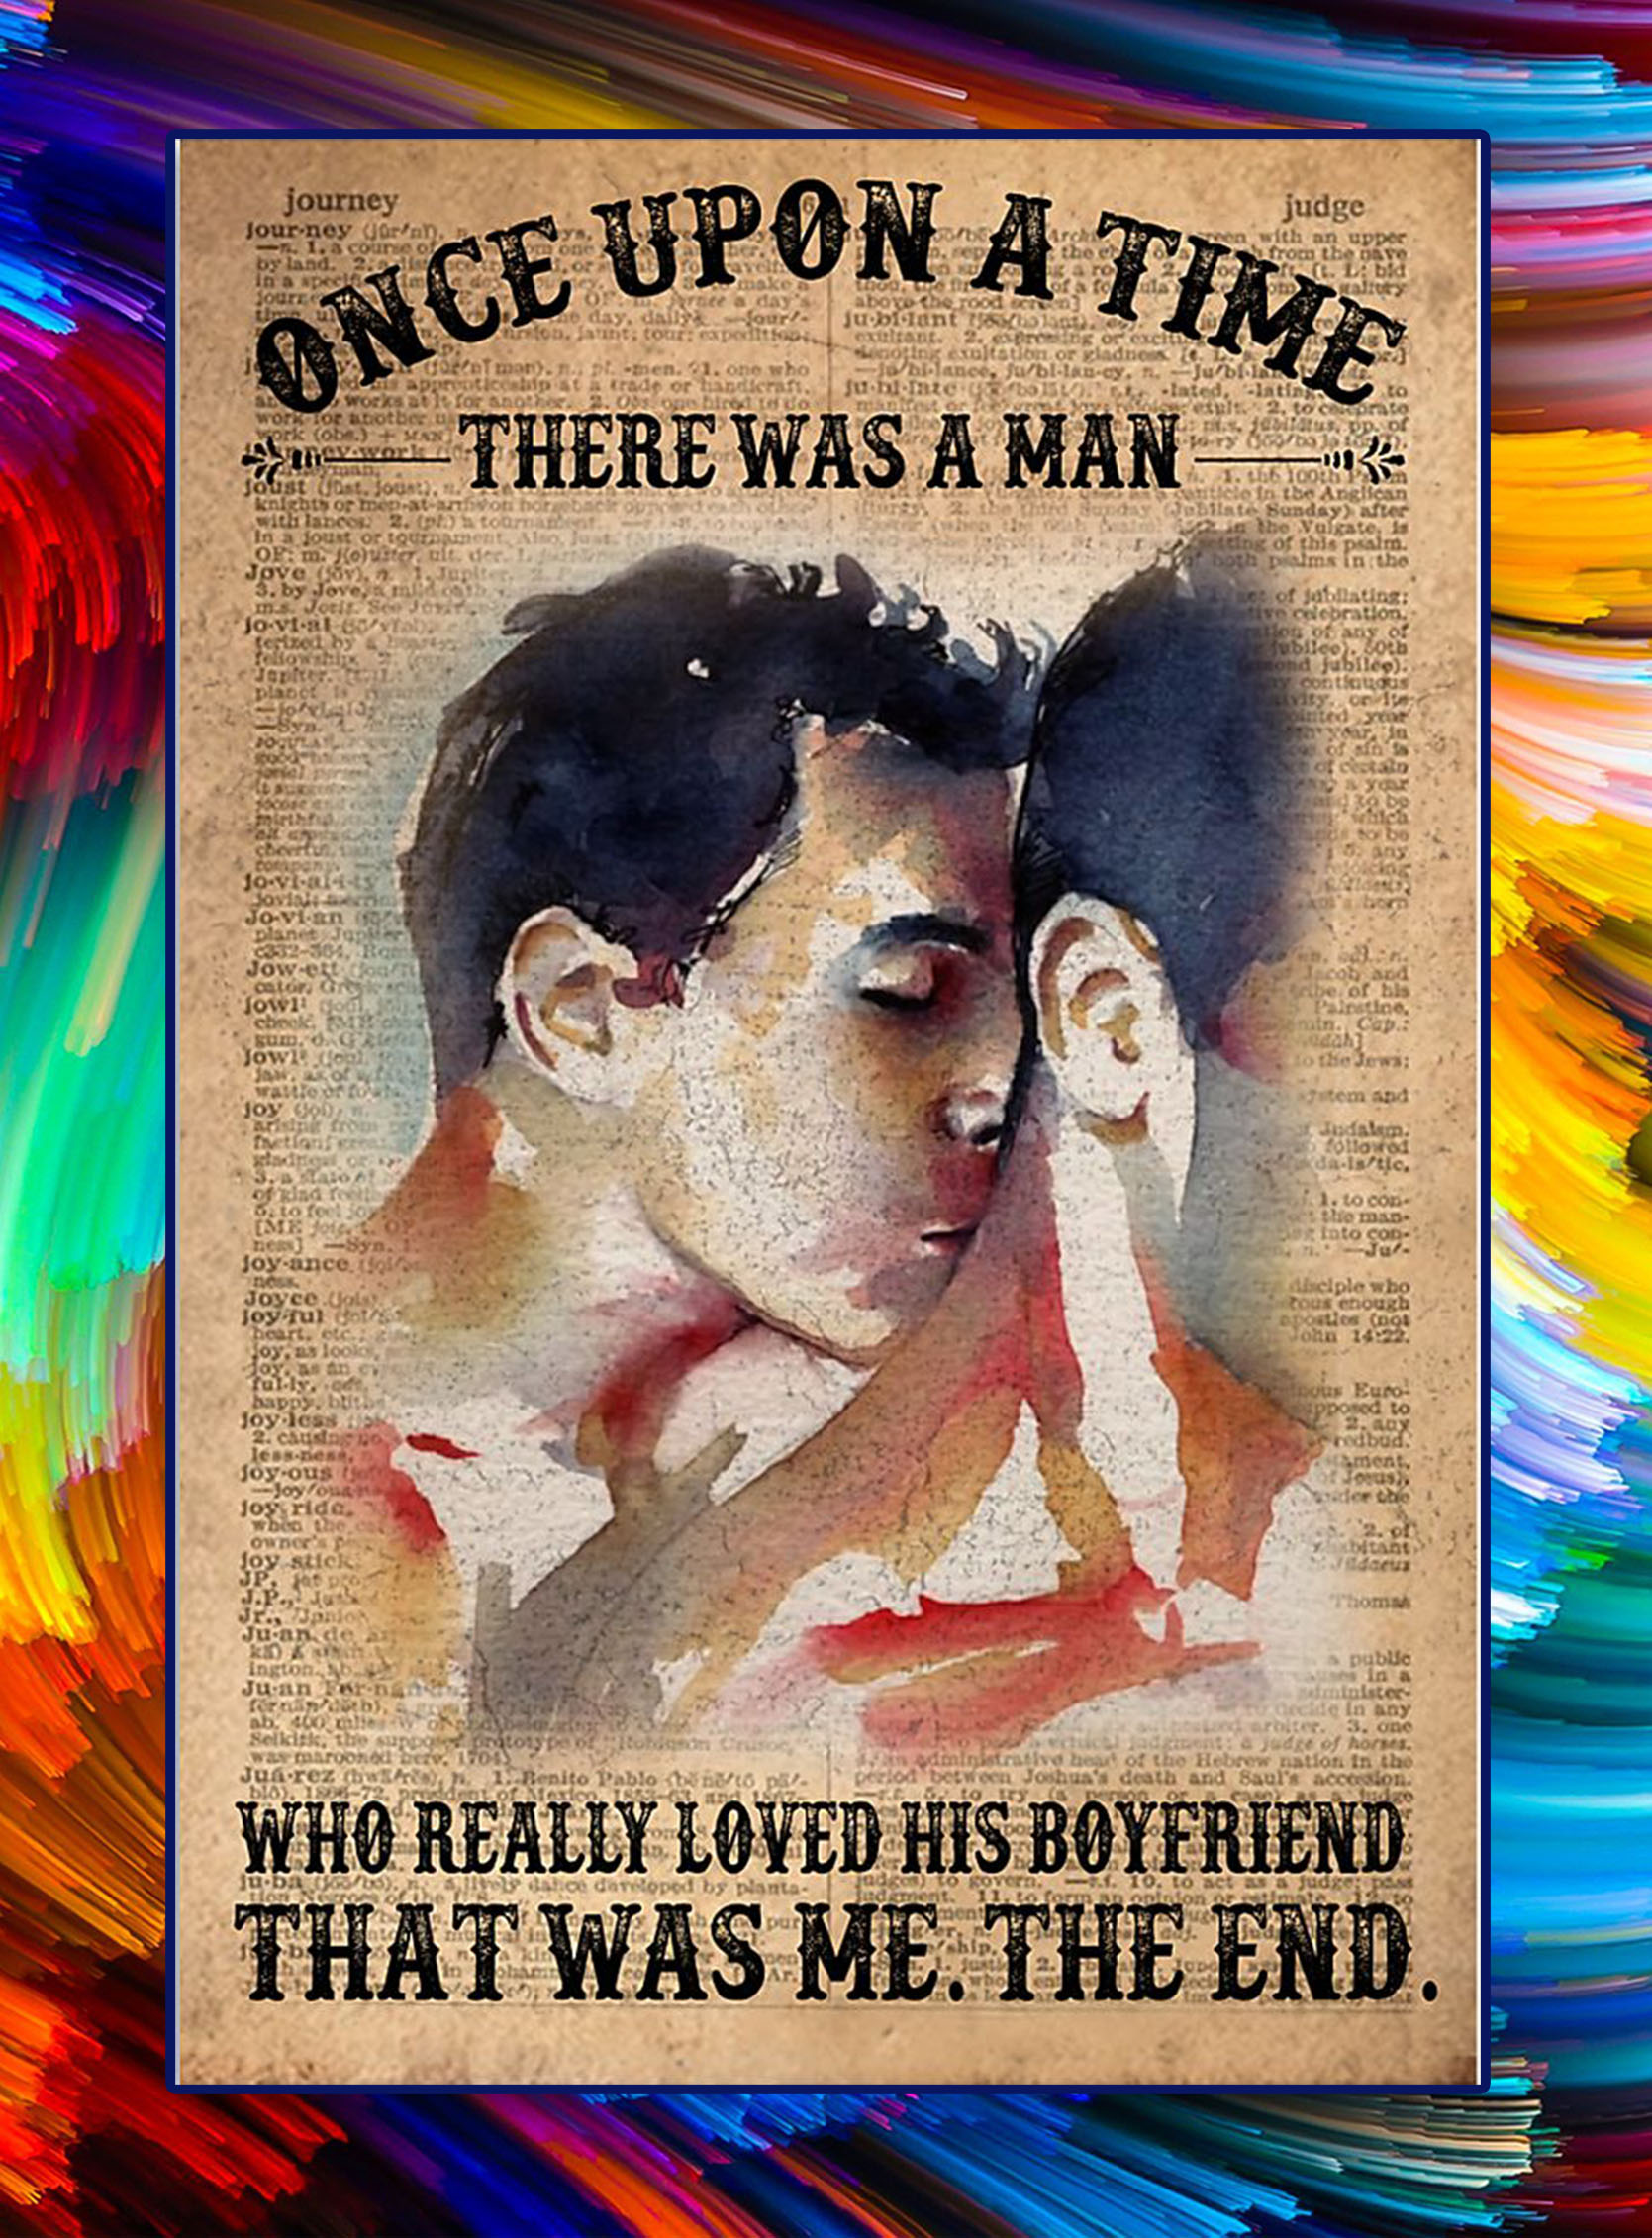 Once upon a time there was a man who really loved his boyfriend poster - A1